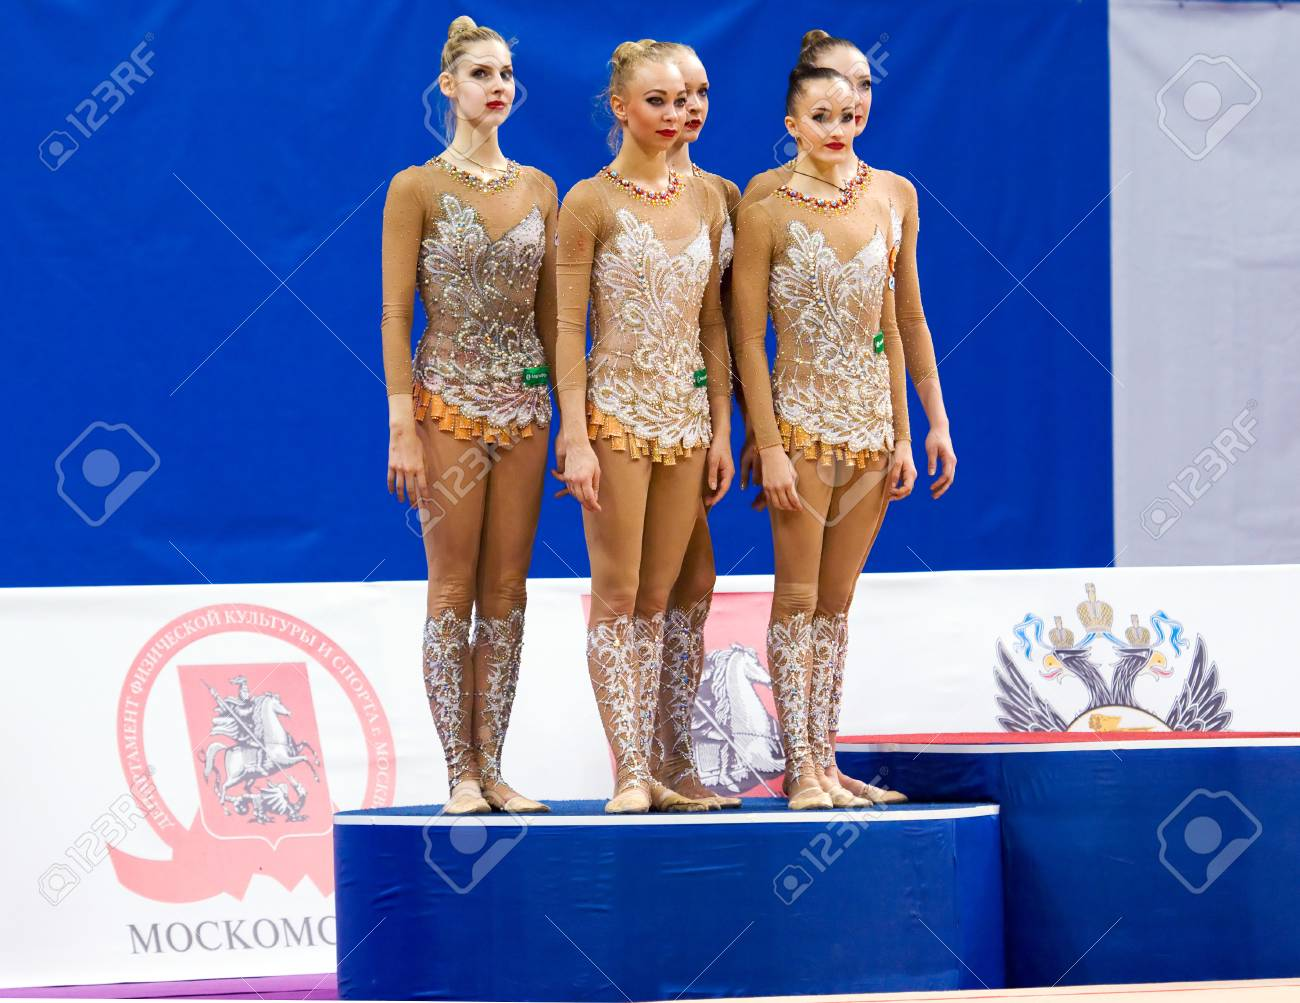 MOSCOW, RUSSIA - FEBRUARY 20, 2016: Russian team on podium on